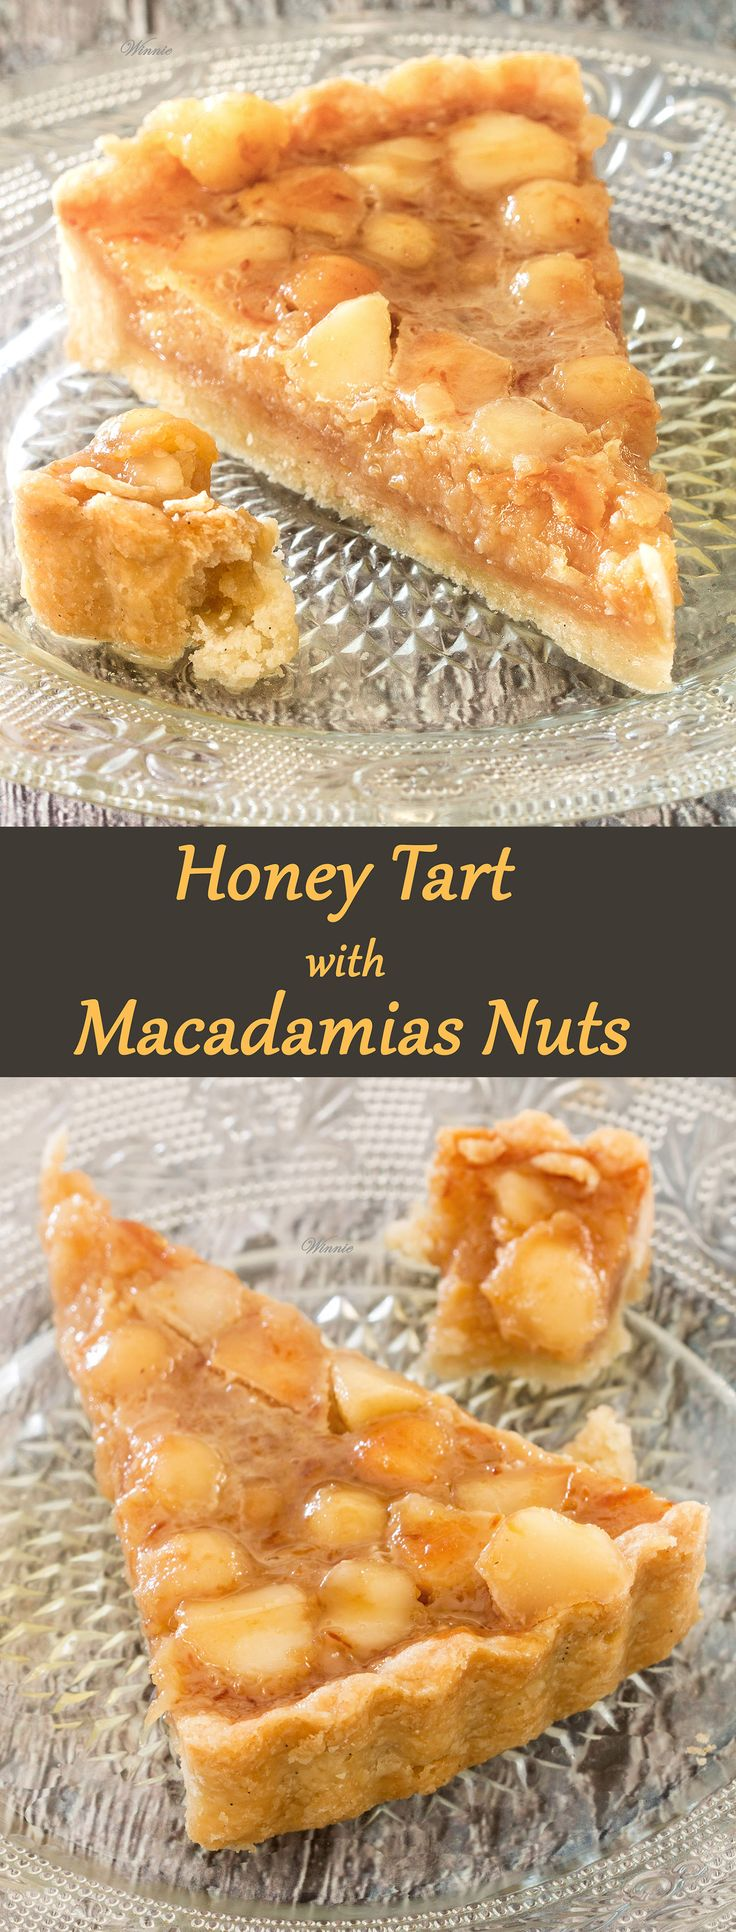 Honey Tart with Macadamias Nuts. Wonderful combination of flavors ...